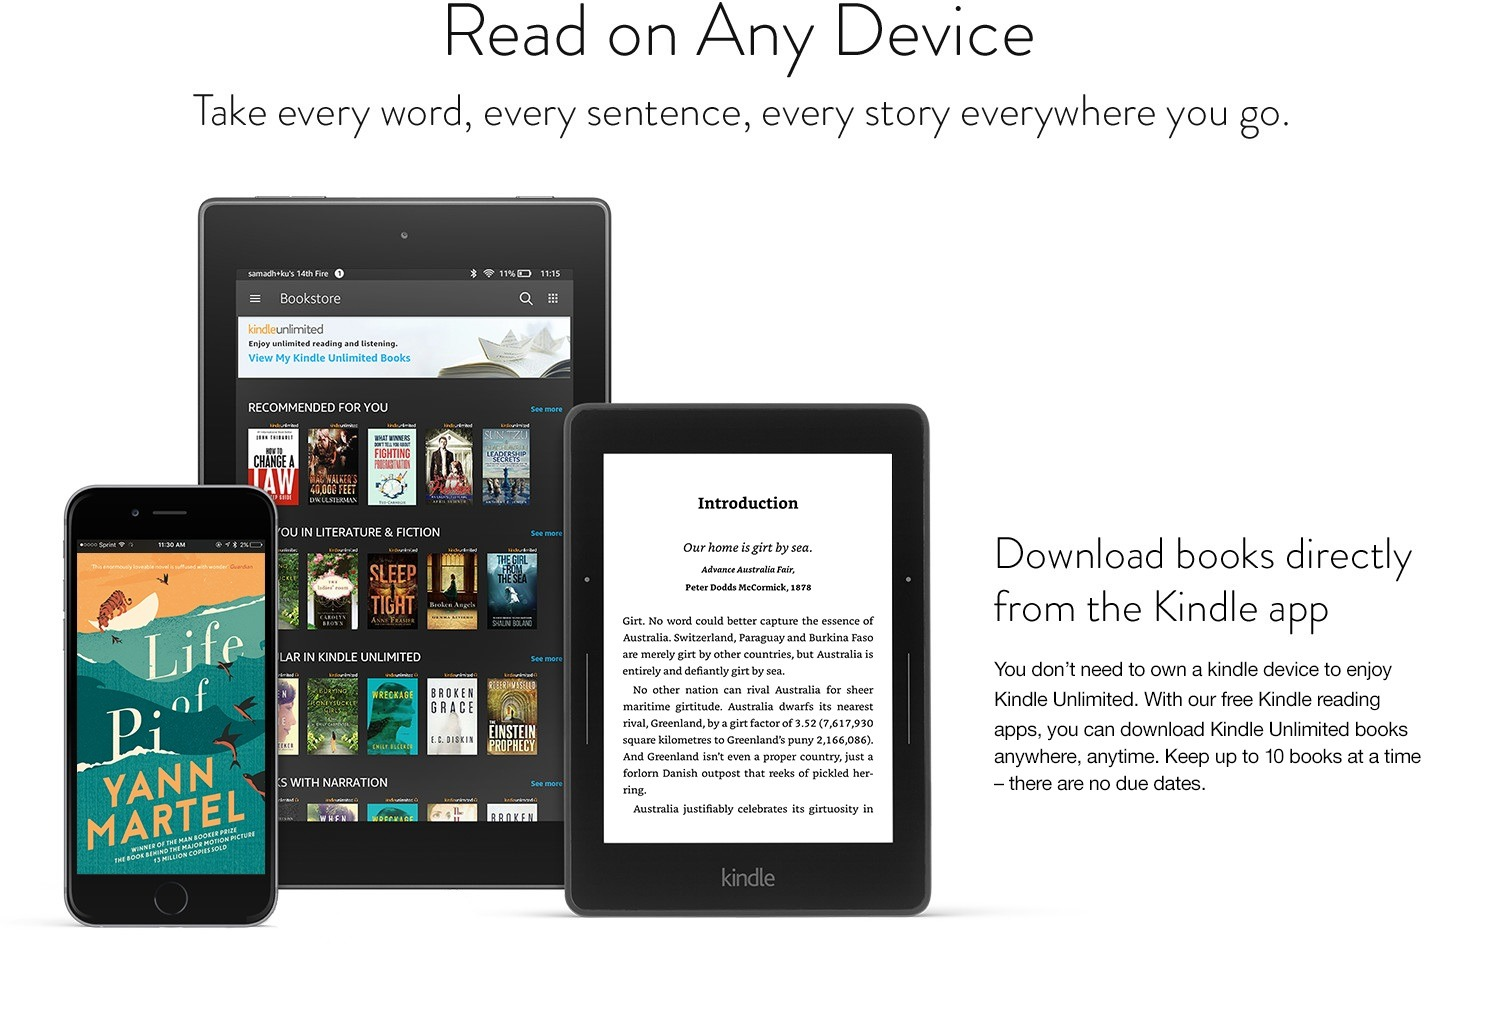 Kindle Unlimited - Read on any device